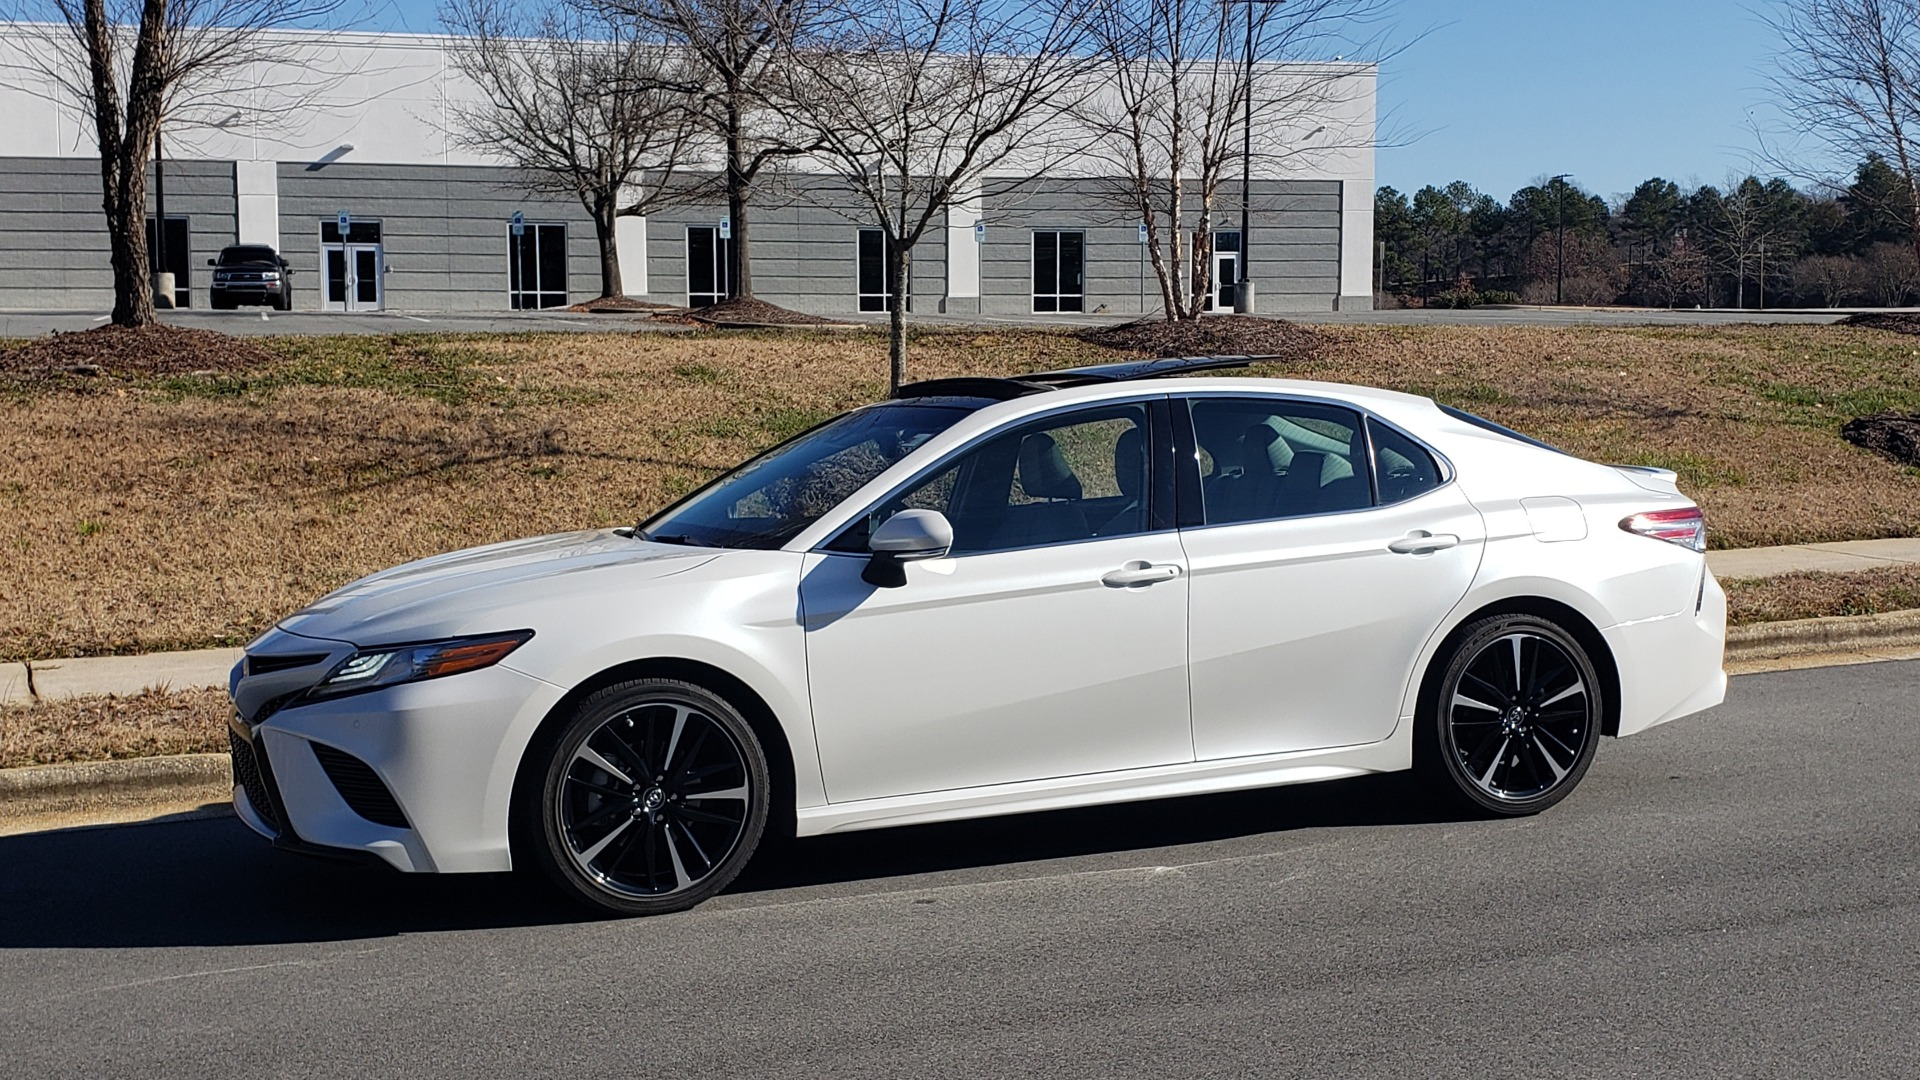 Used 2018 Toyota CAMRY XSE 2.5L SEDAN / 8-SPD AUTO / PANO-ROOF / 19IN WHEELS for sale Sold at Formula Imports in Charlotte NC 28227 2